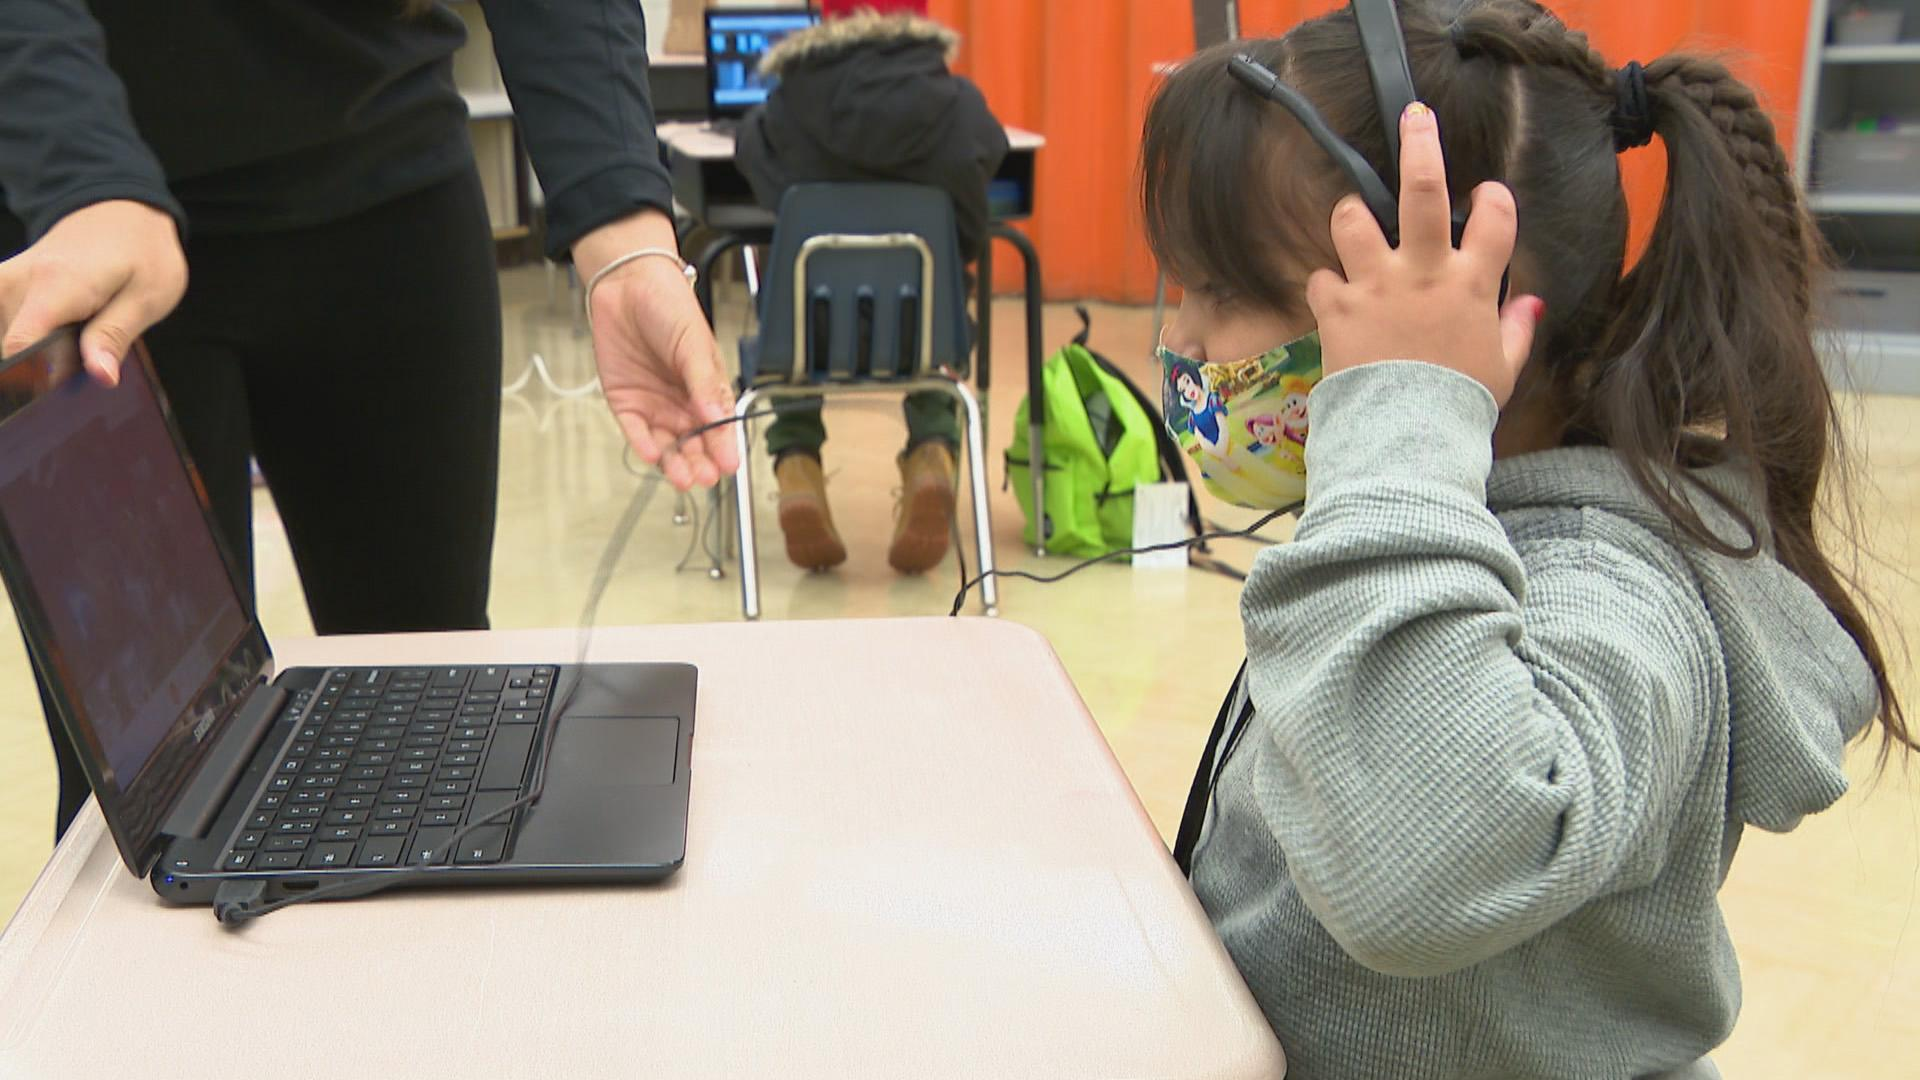 An elementary school student prepares to log onto her laptop for remote learning at A.J. Katenzmaier Academy in North Chicago on Oct. 30, 2020. (WTTW News)